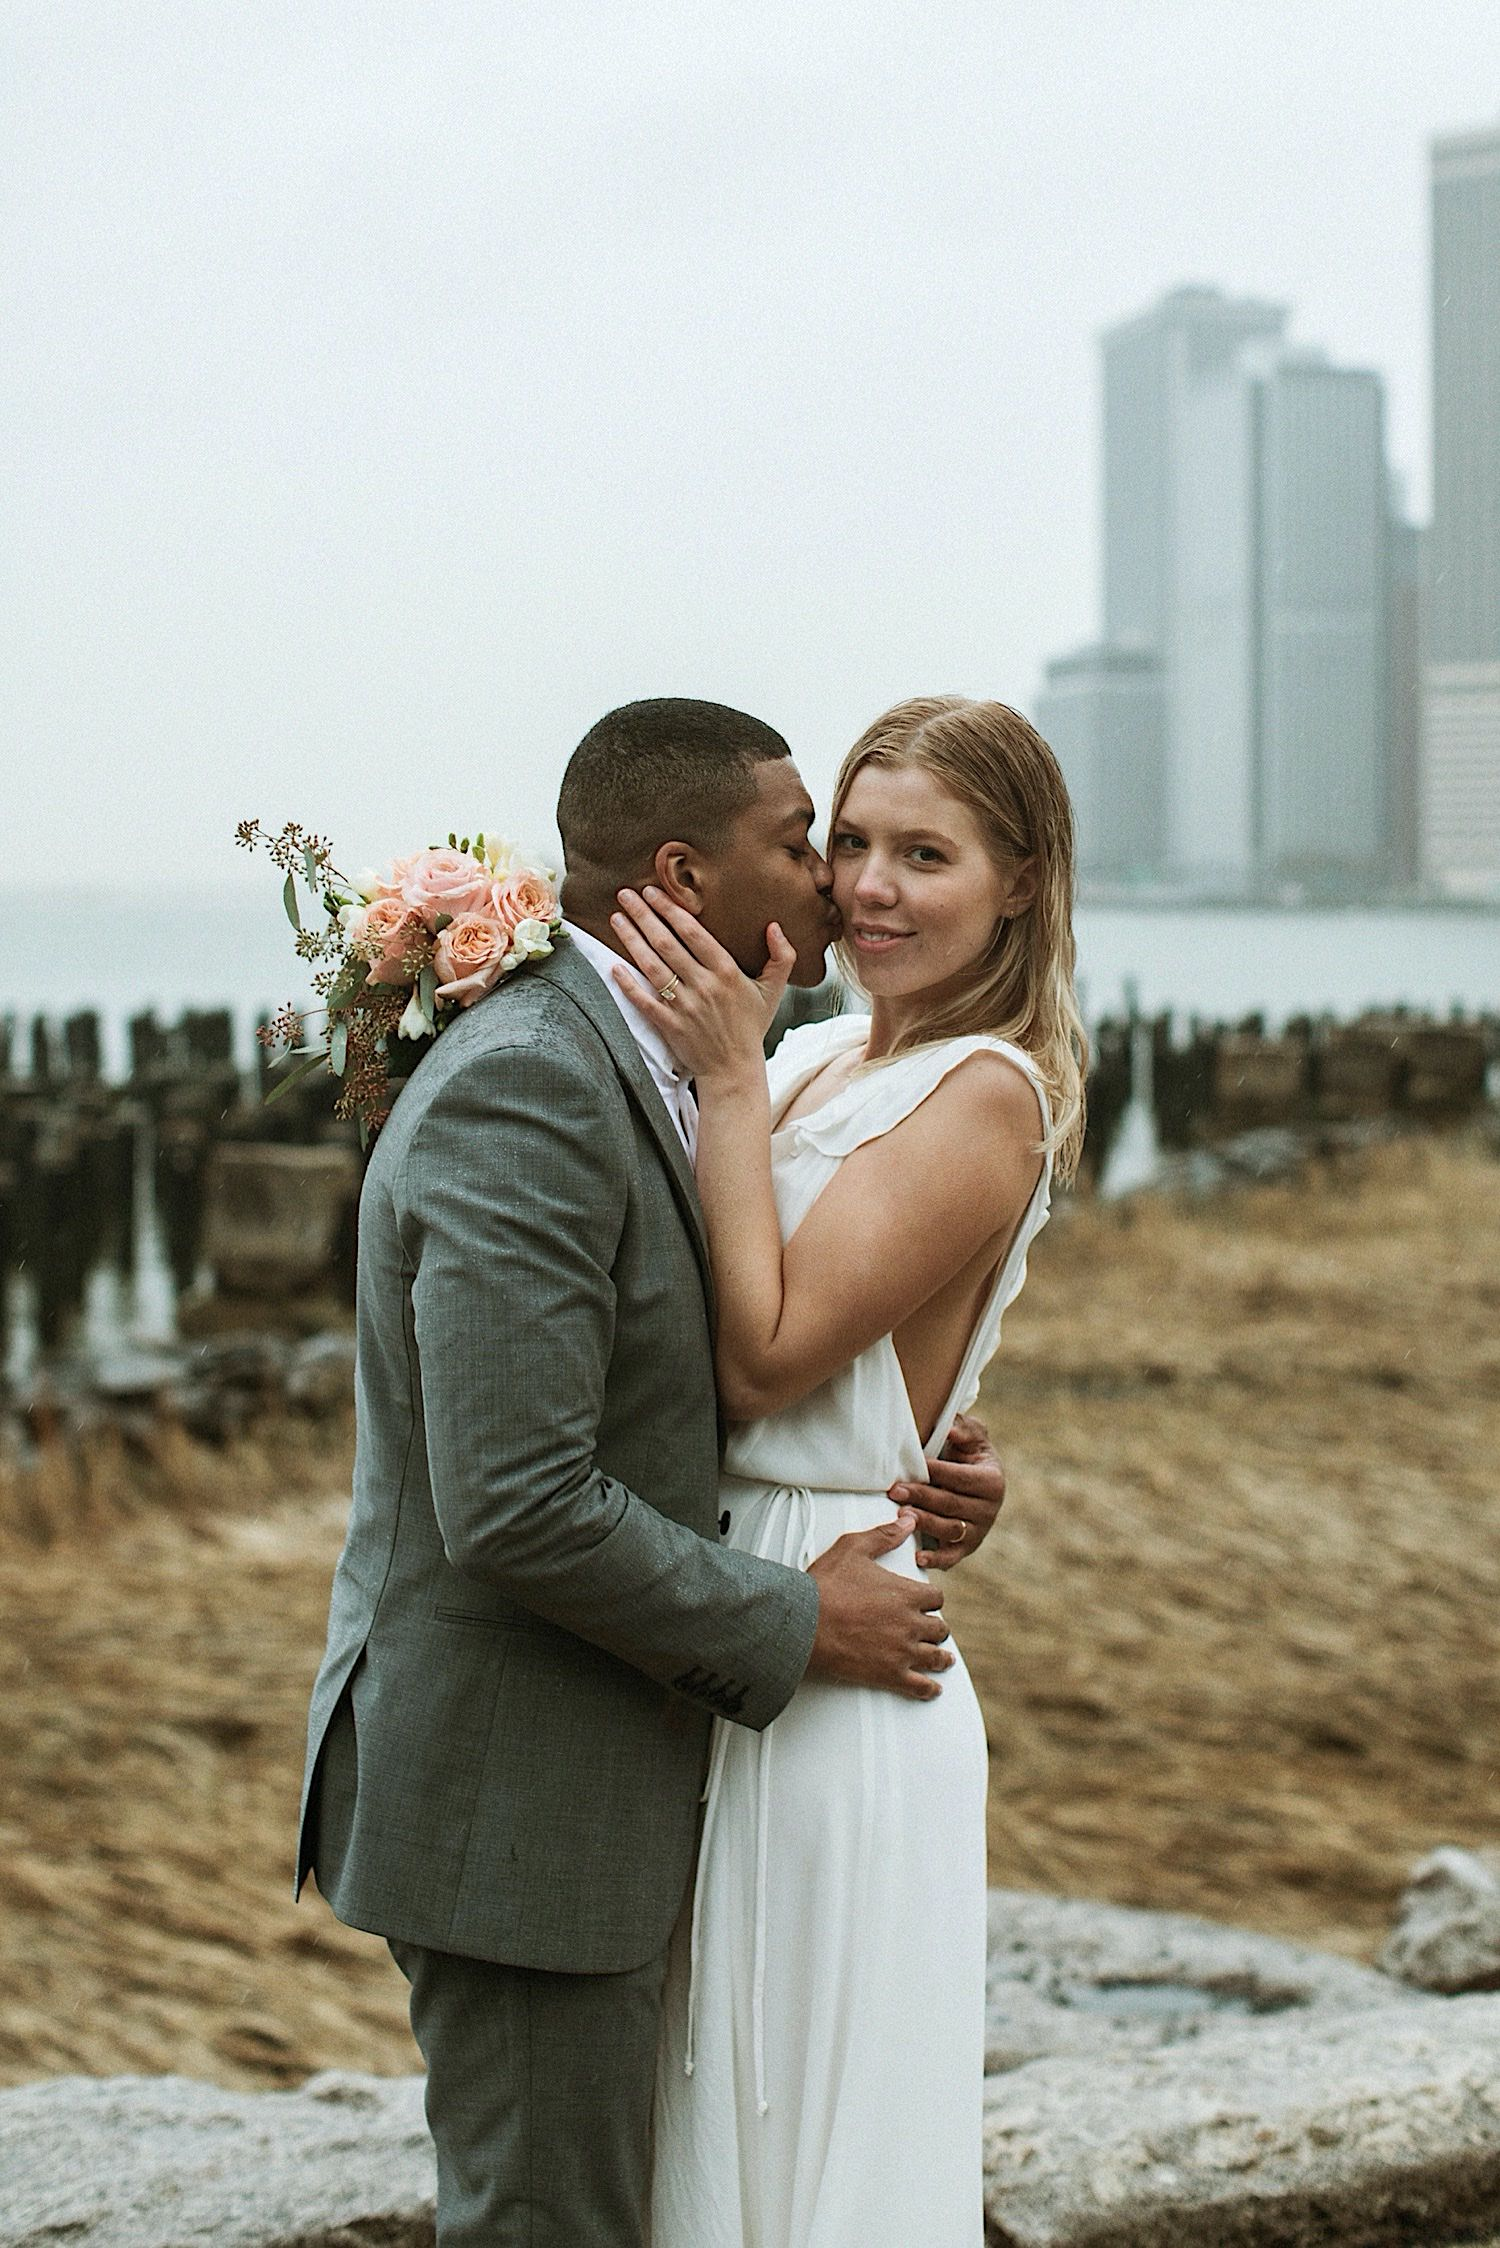 DUMBO Wedding Photography - Groom gives bride a kiss on the cheek as she smiles at the camera in DUMBO Brooklyn